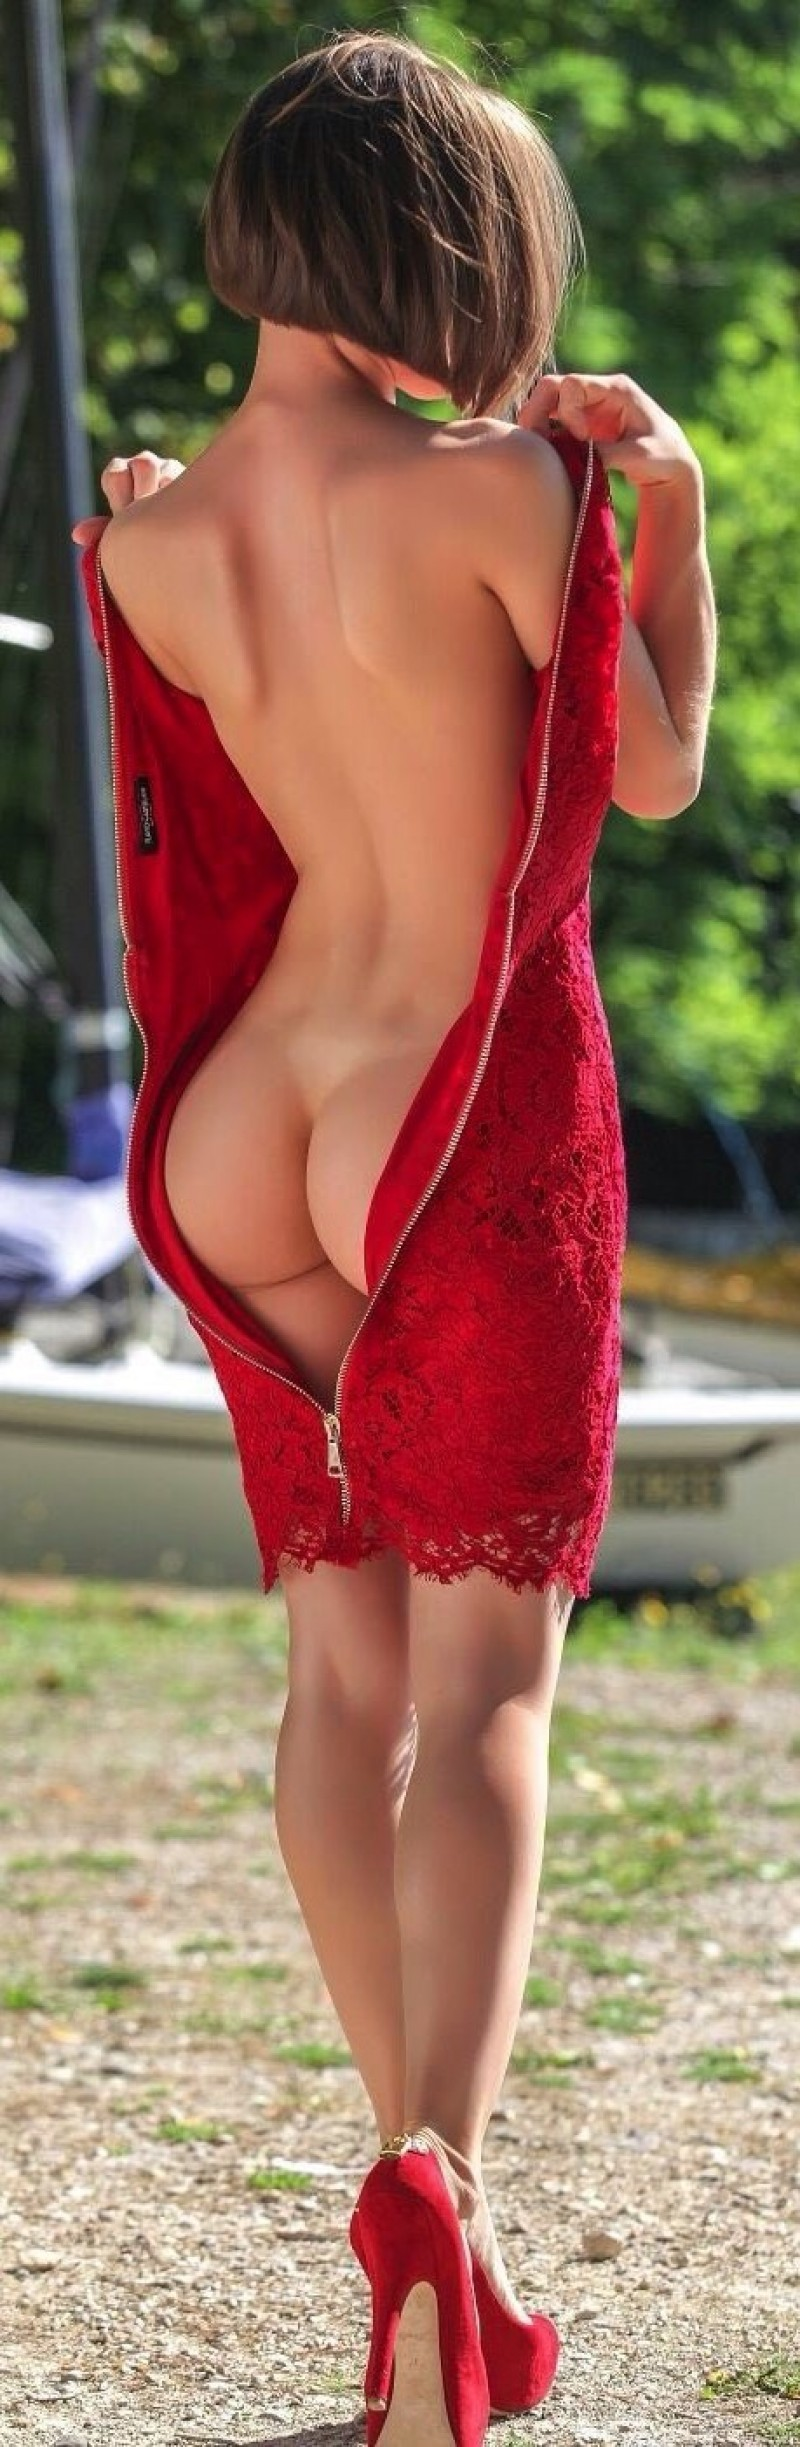 ridiculously hot lesbian bisexual women autostraddle Greatbody, Ithinkiminlove, Outdoors, Perfectas, Rearview, Seethrudress, Sheer